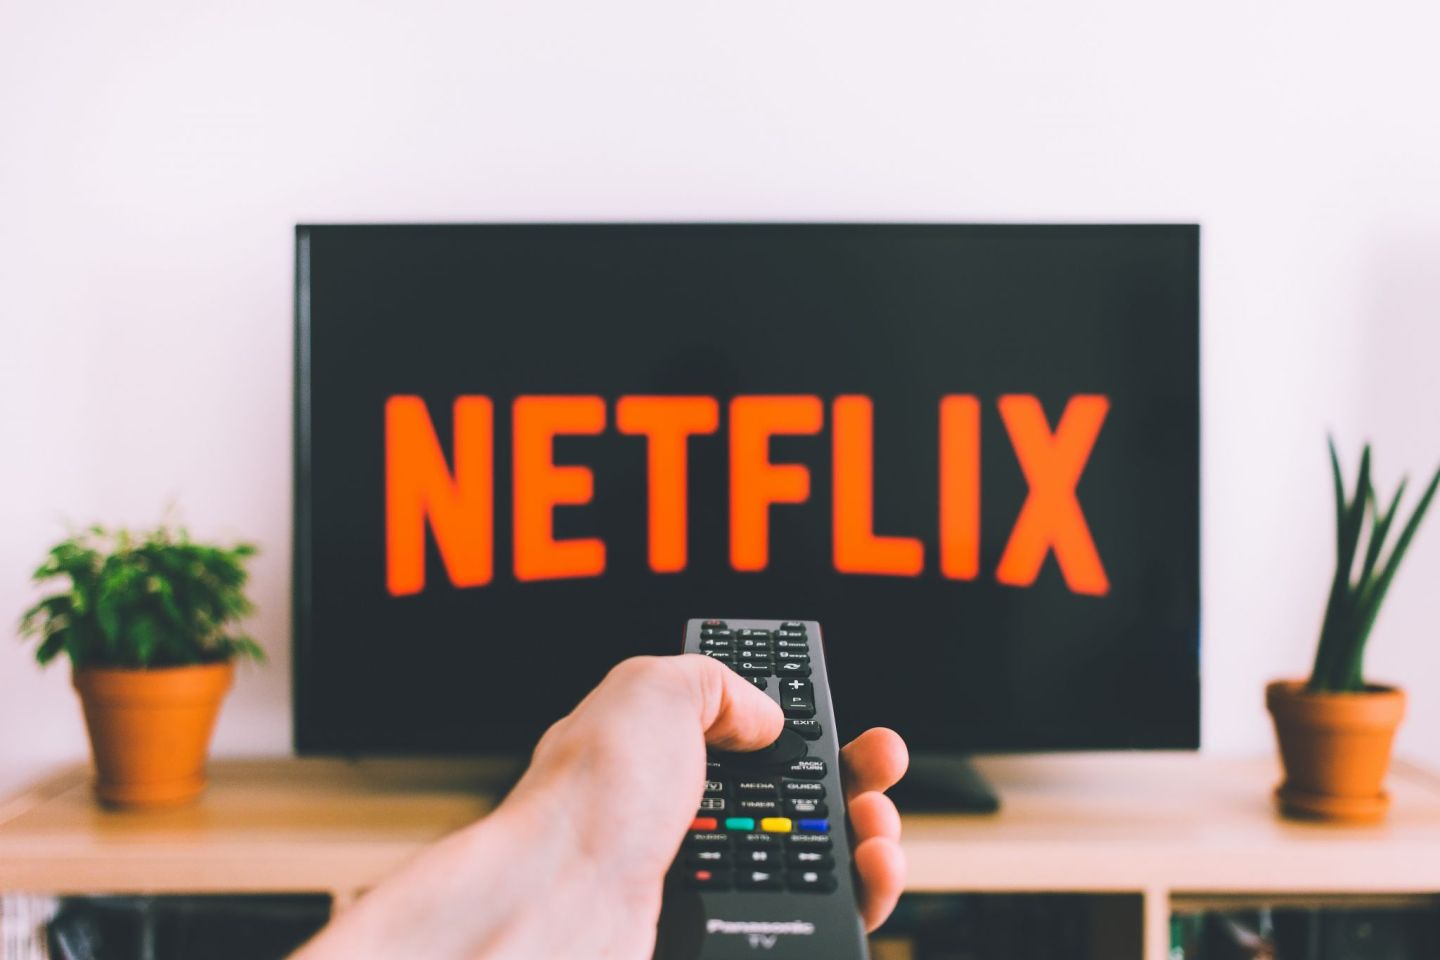 Netflix tips: this is what I've watched in January